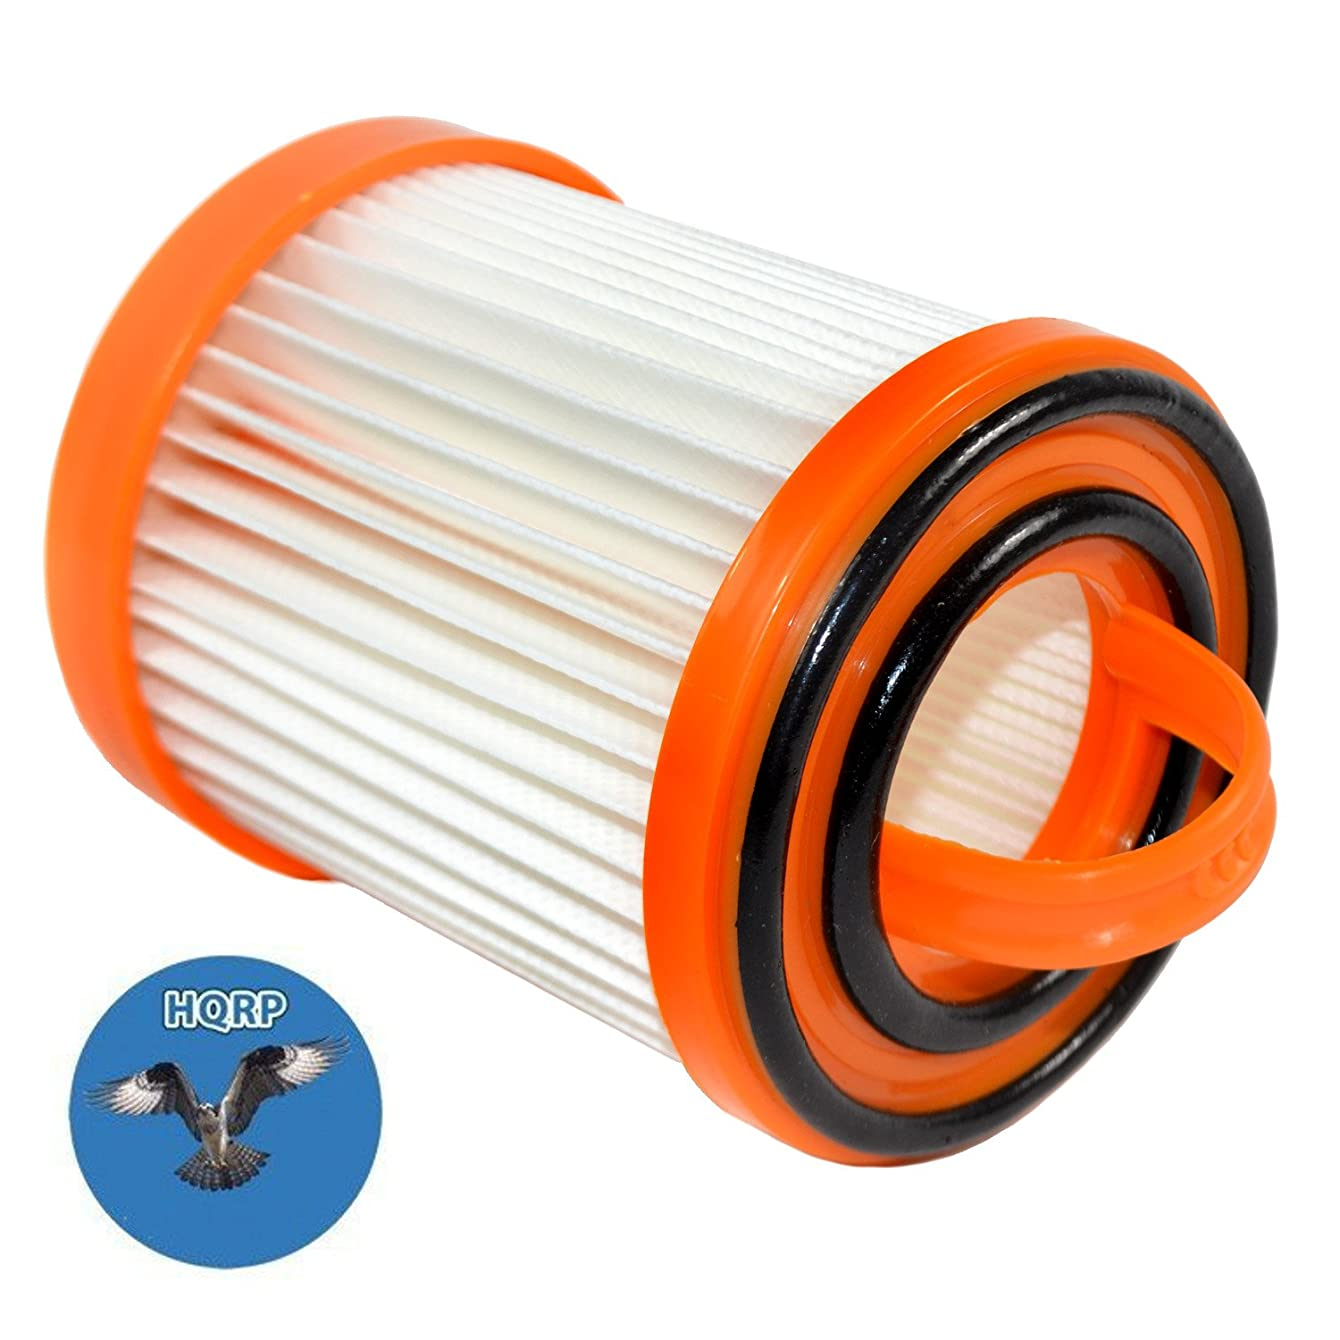 HQRP Dust Cup Filter for Electrolux Sanitaire SC5745, SC5747, SC5845, SC5845A, SC5845B, SC5745A, SC5745B, SC5747G Commercial Vacuum Cleaners, 71738A-4 62136A DCF-3 Replacement Coaster